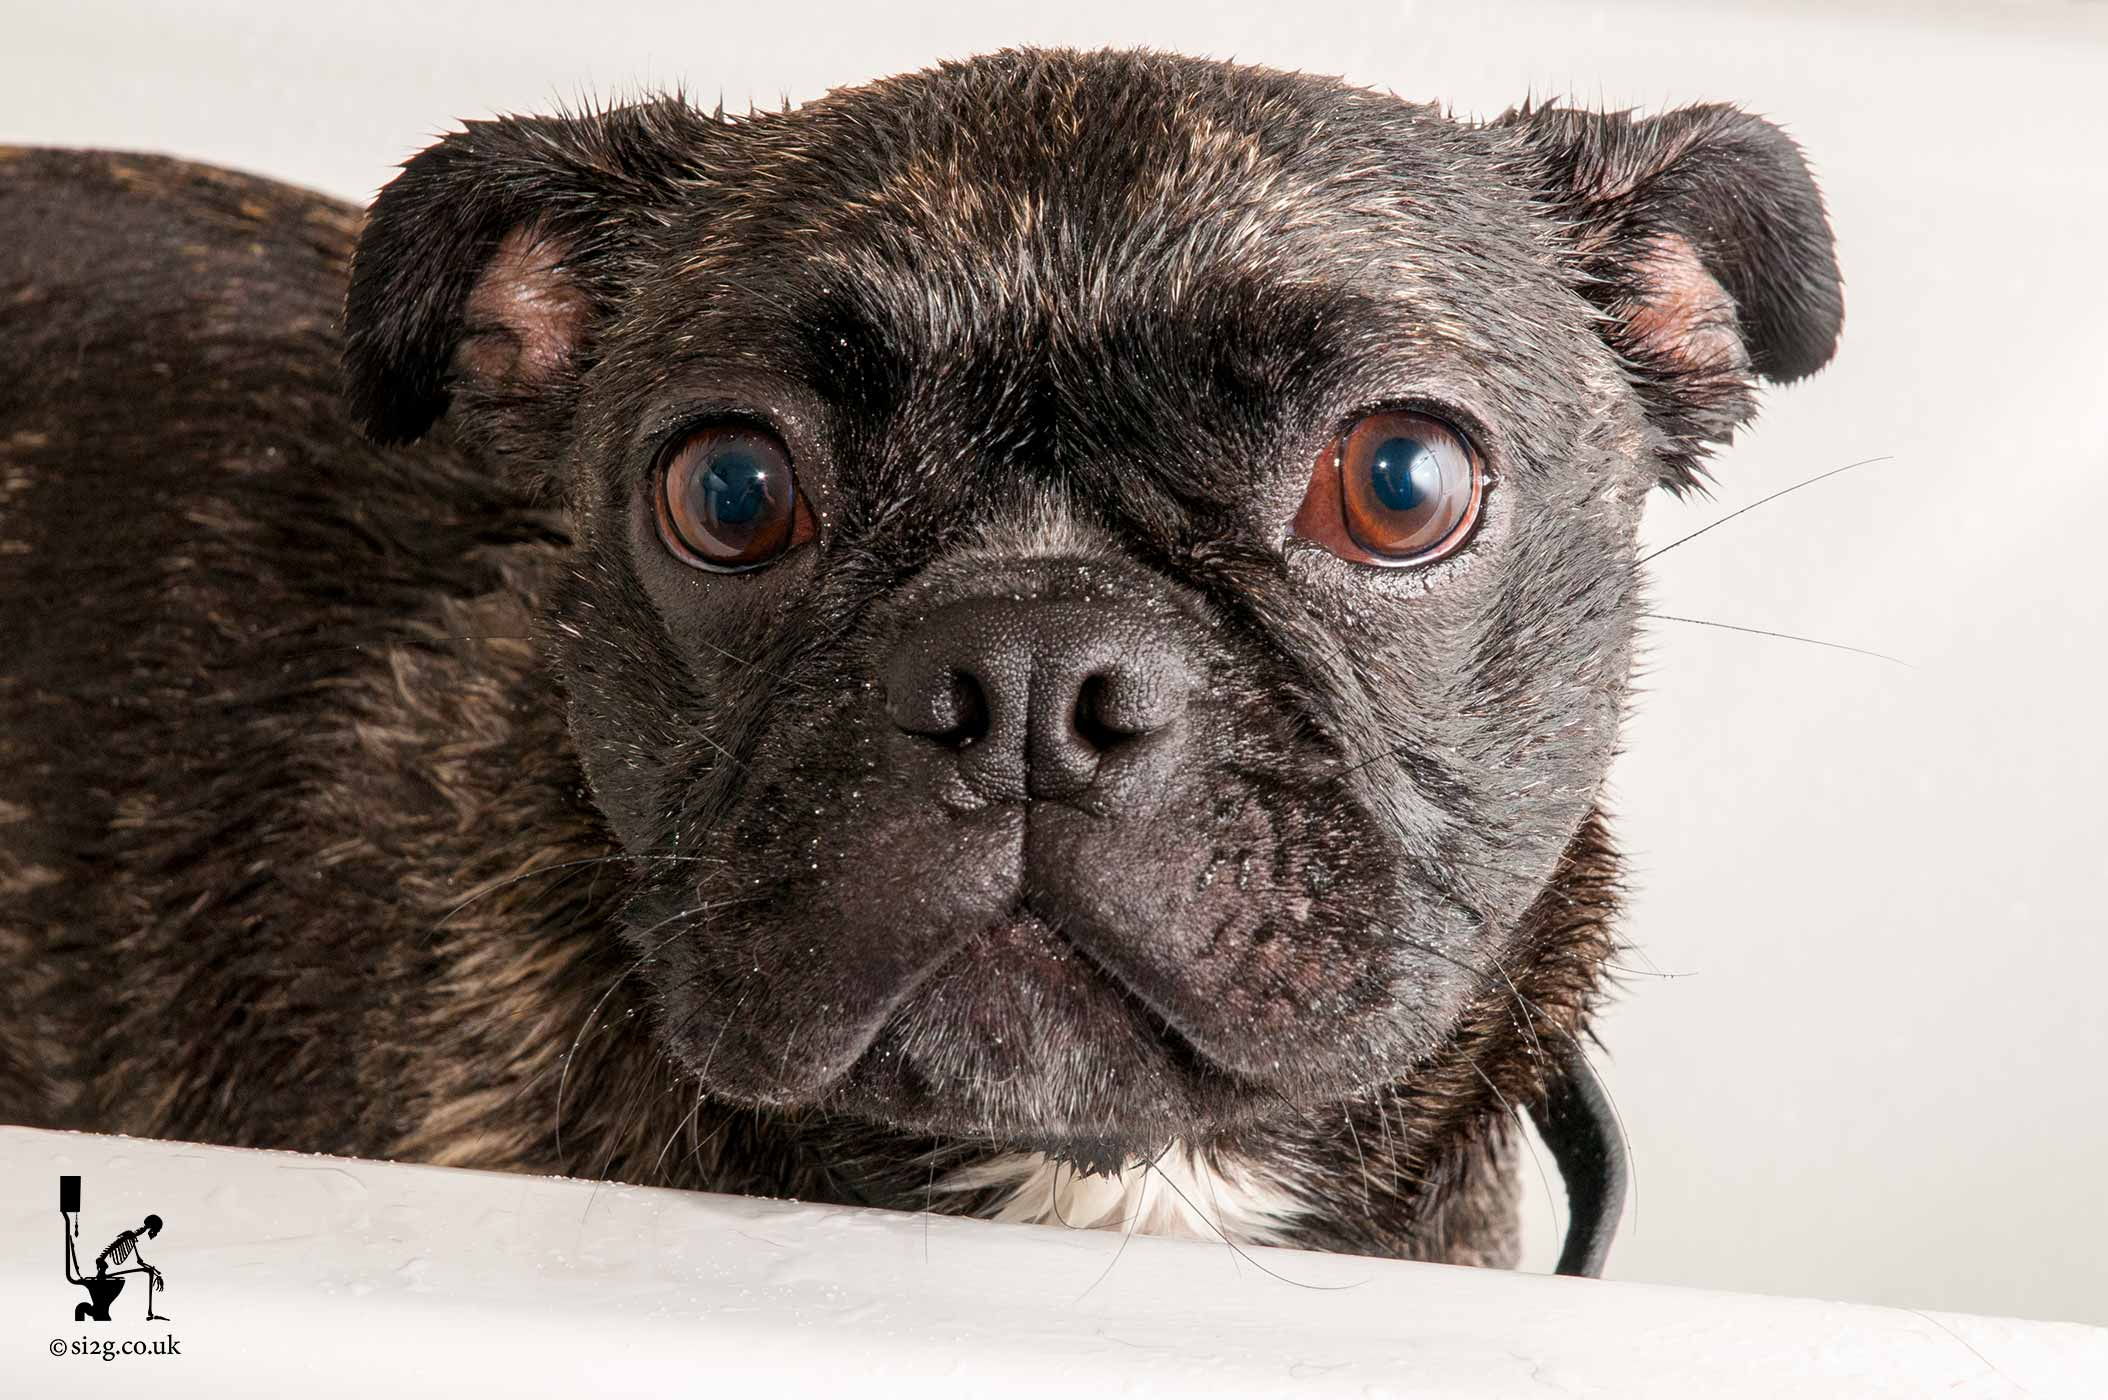 Naughty Doggy - Still, to this day, the naughtiest little doggy in the world - EVER!  This cross between a Pug and a Boston Terrier, often known as a Bug, stands in a bath tub after having a bath.